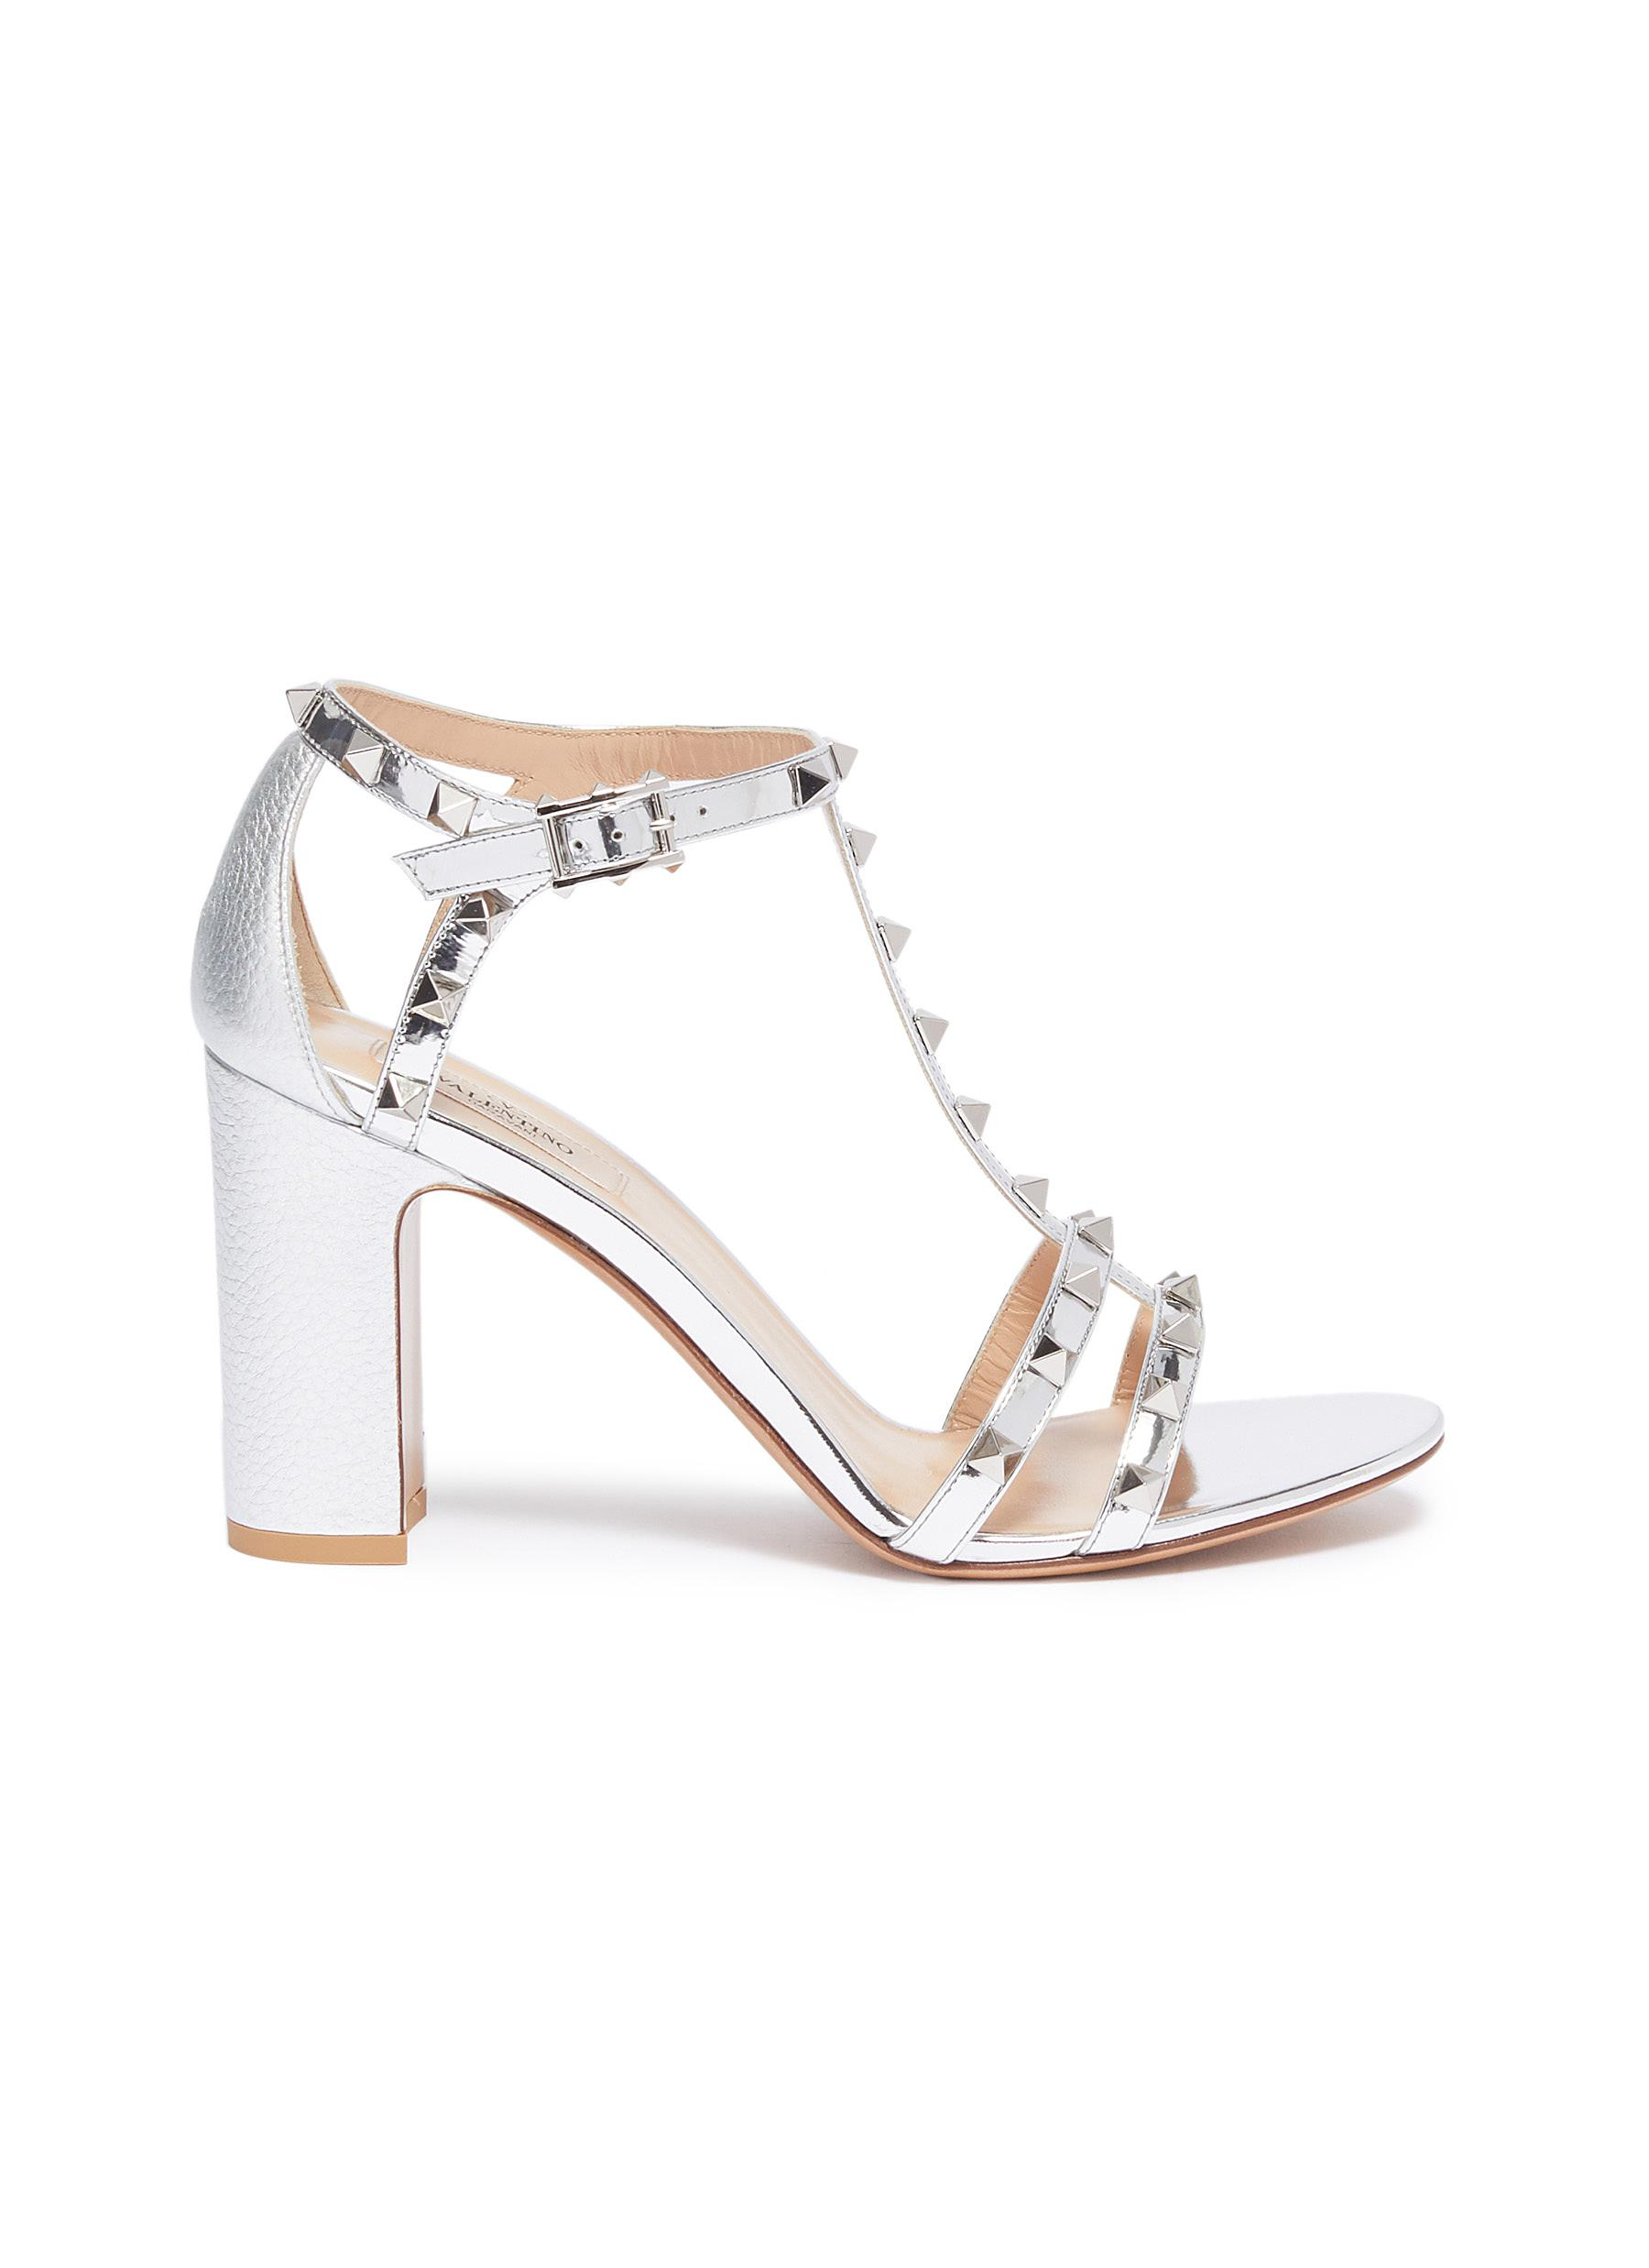 Rockstud caged metallic leather sandals by Valentino